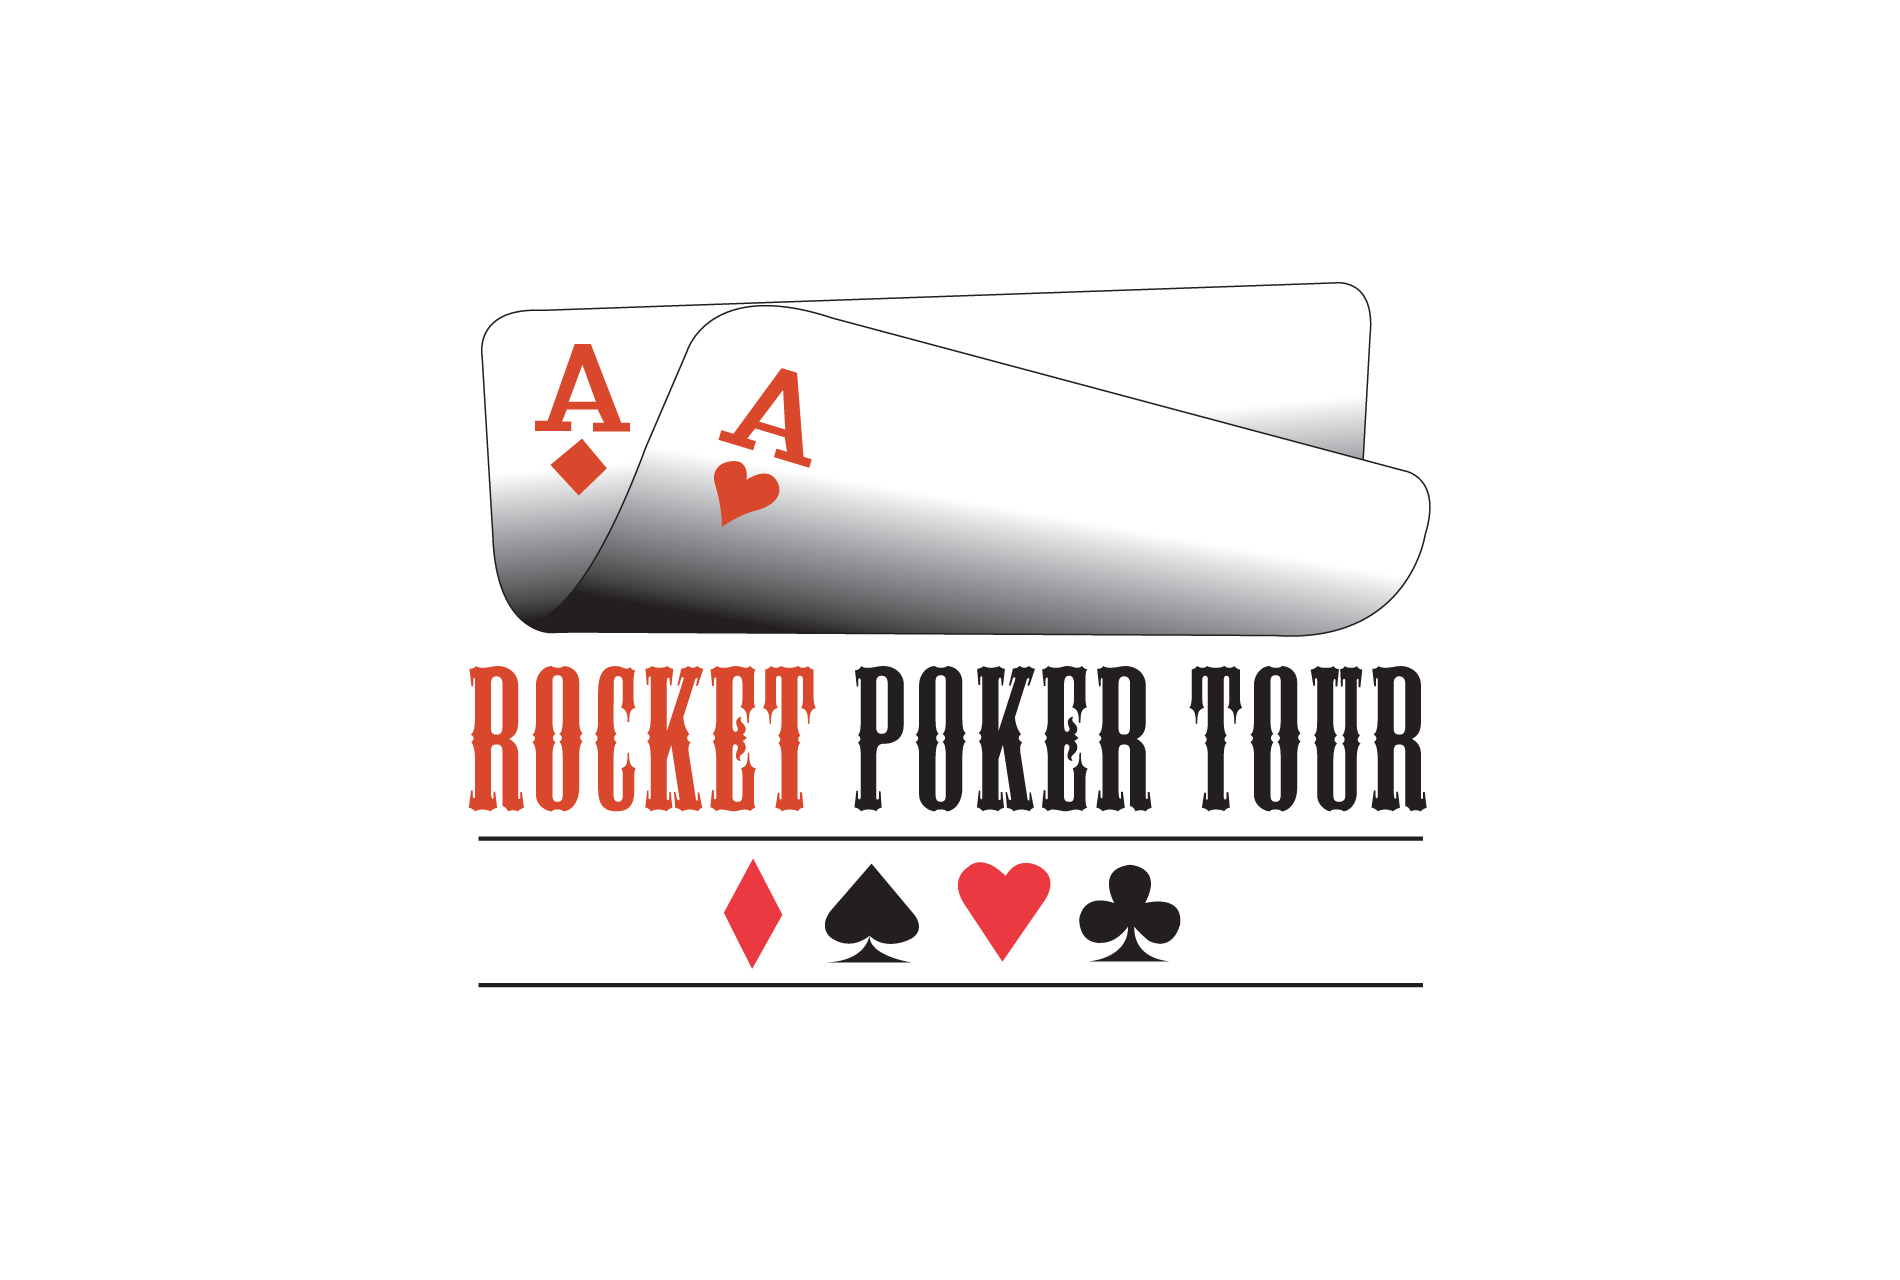 Rocket Poker Logo